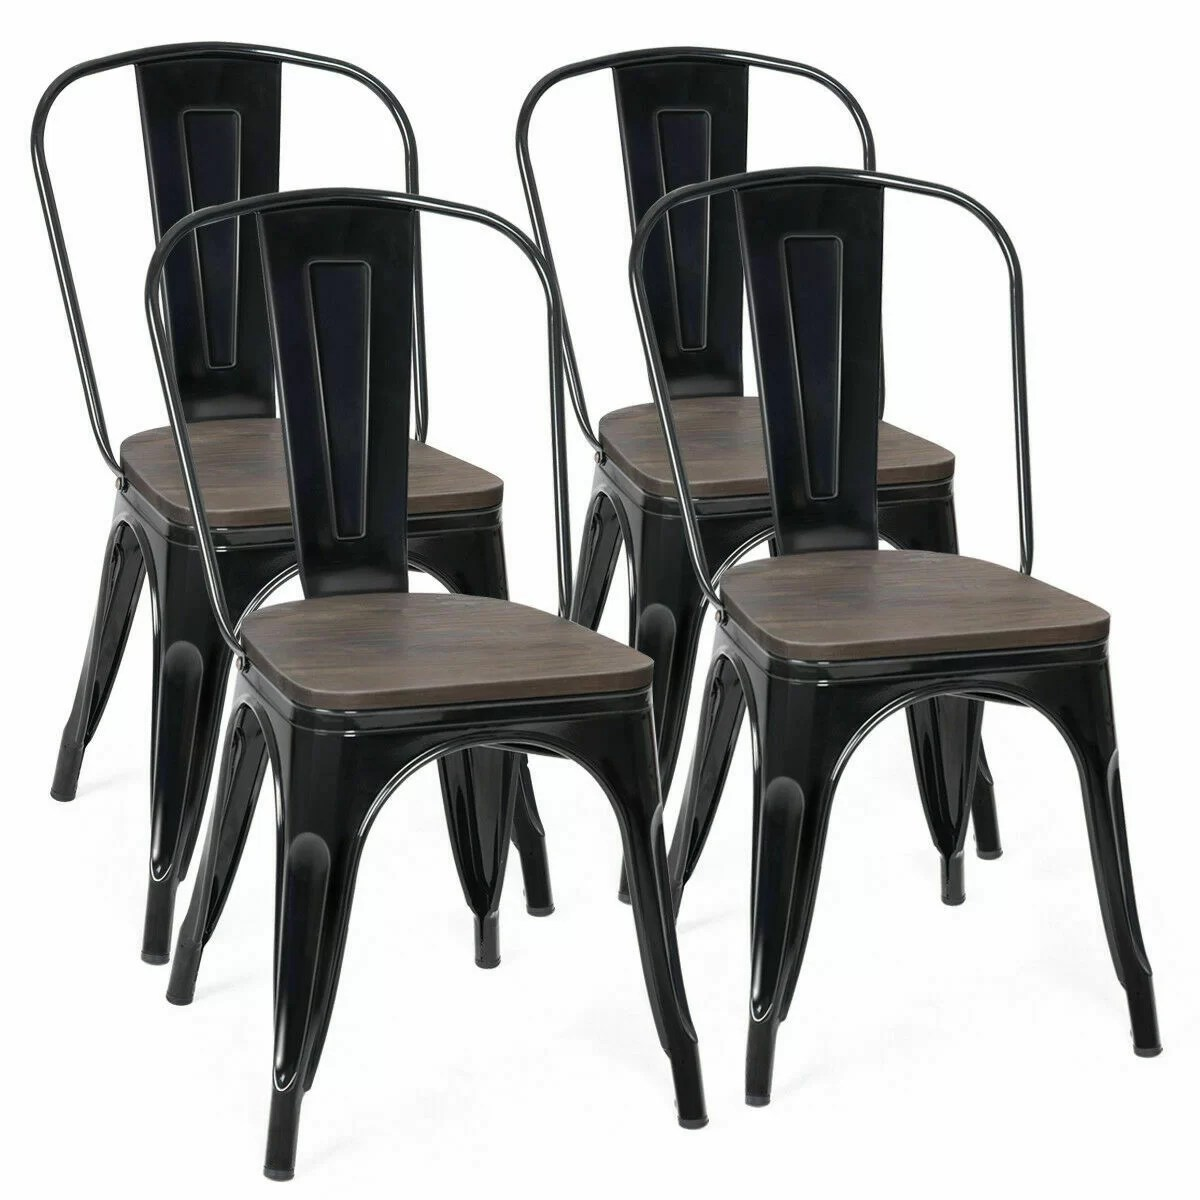 Zackary Bistro Dining Chair